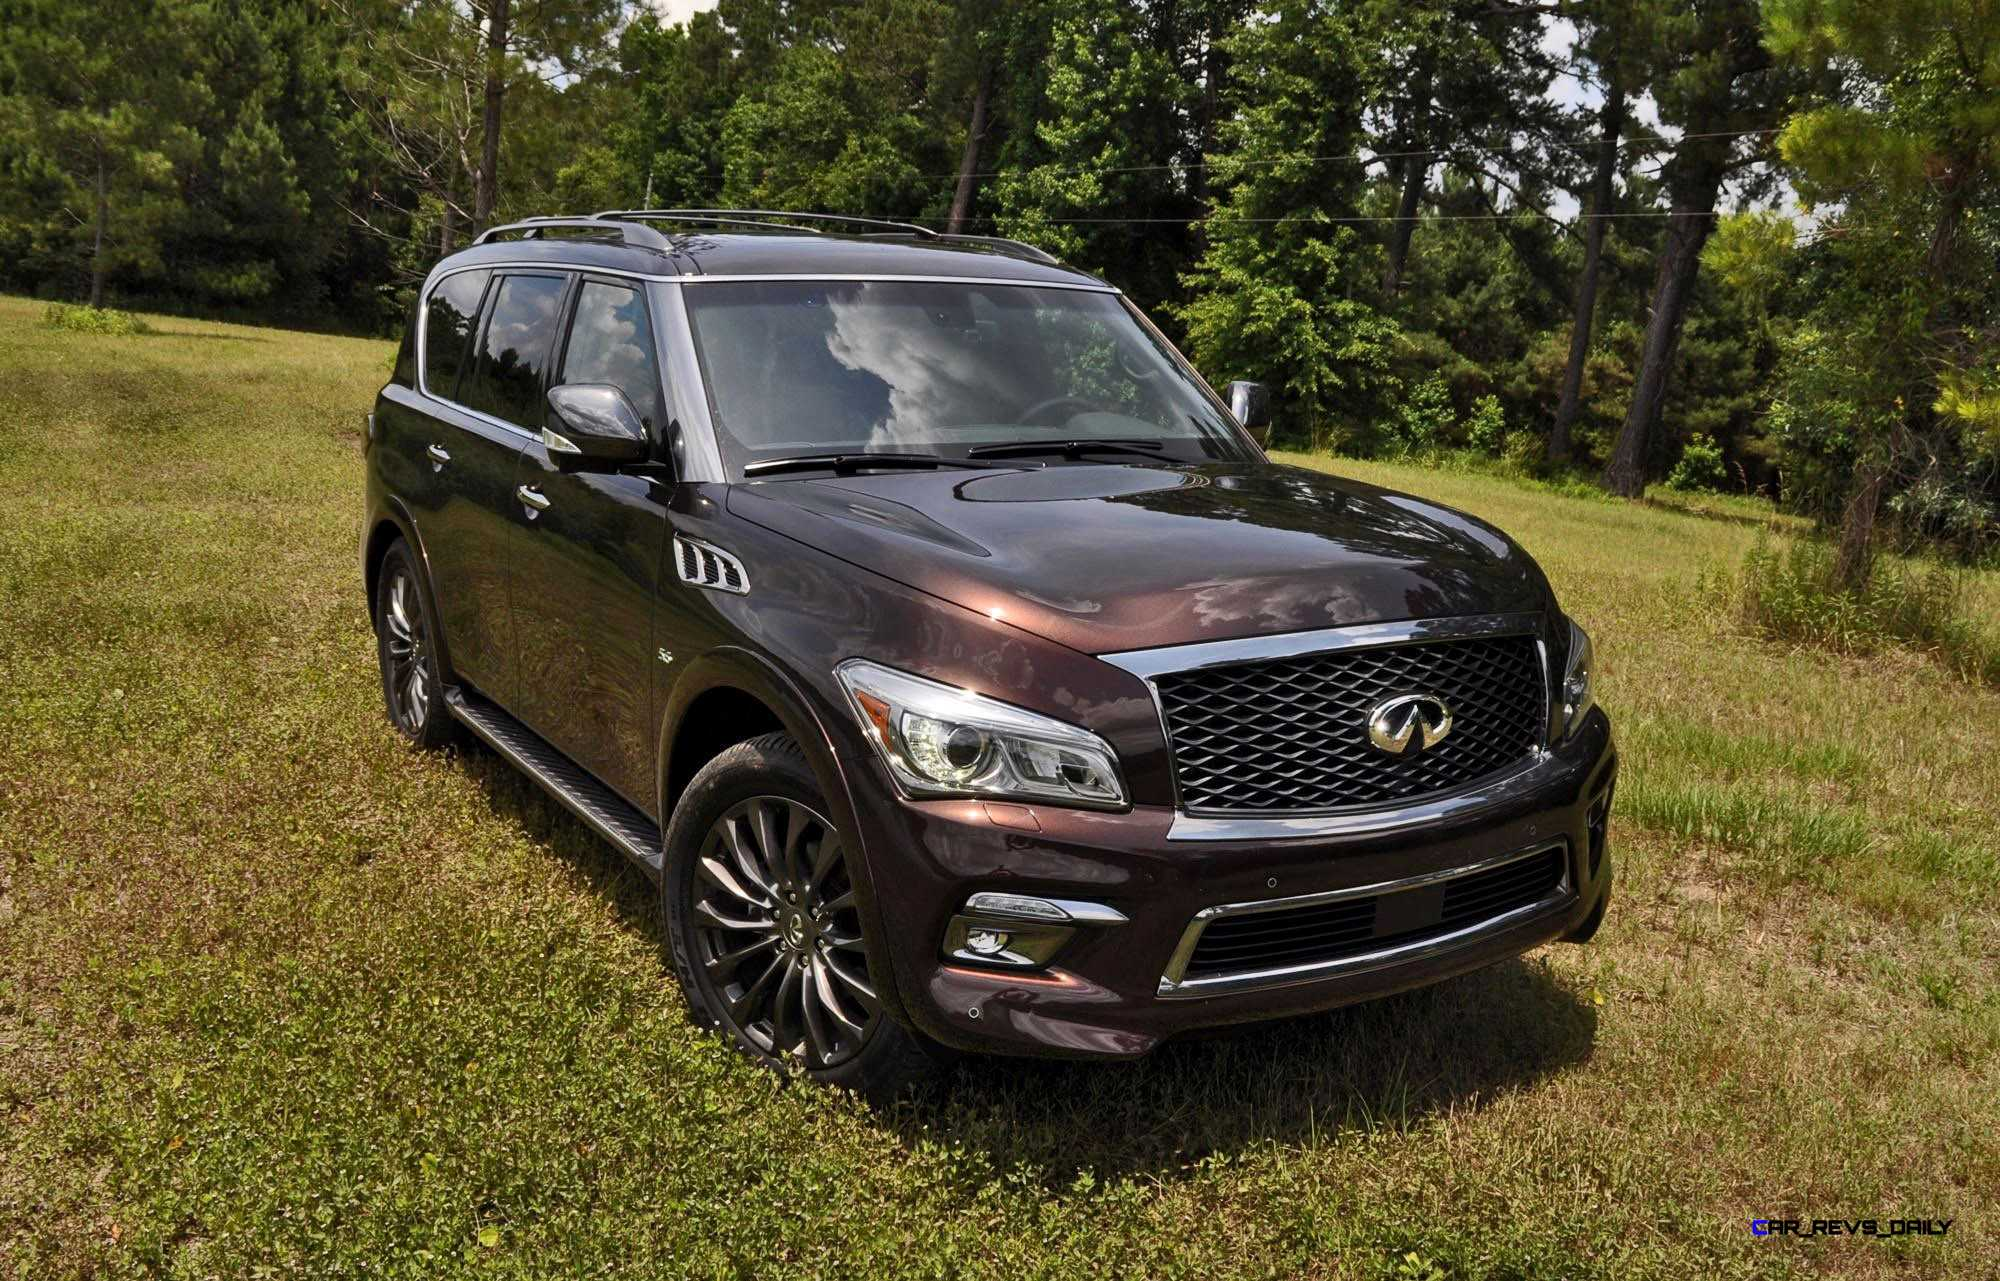 hd road test review 2015 infiniti qx80 limited awd car revs. Black Bedroom Furniture Sets. Home Design Ideas